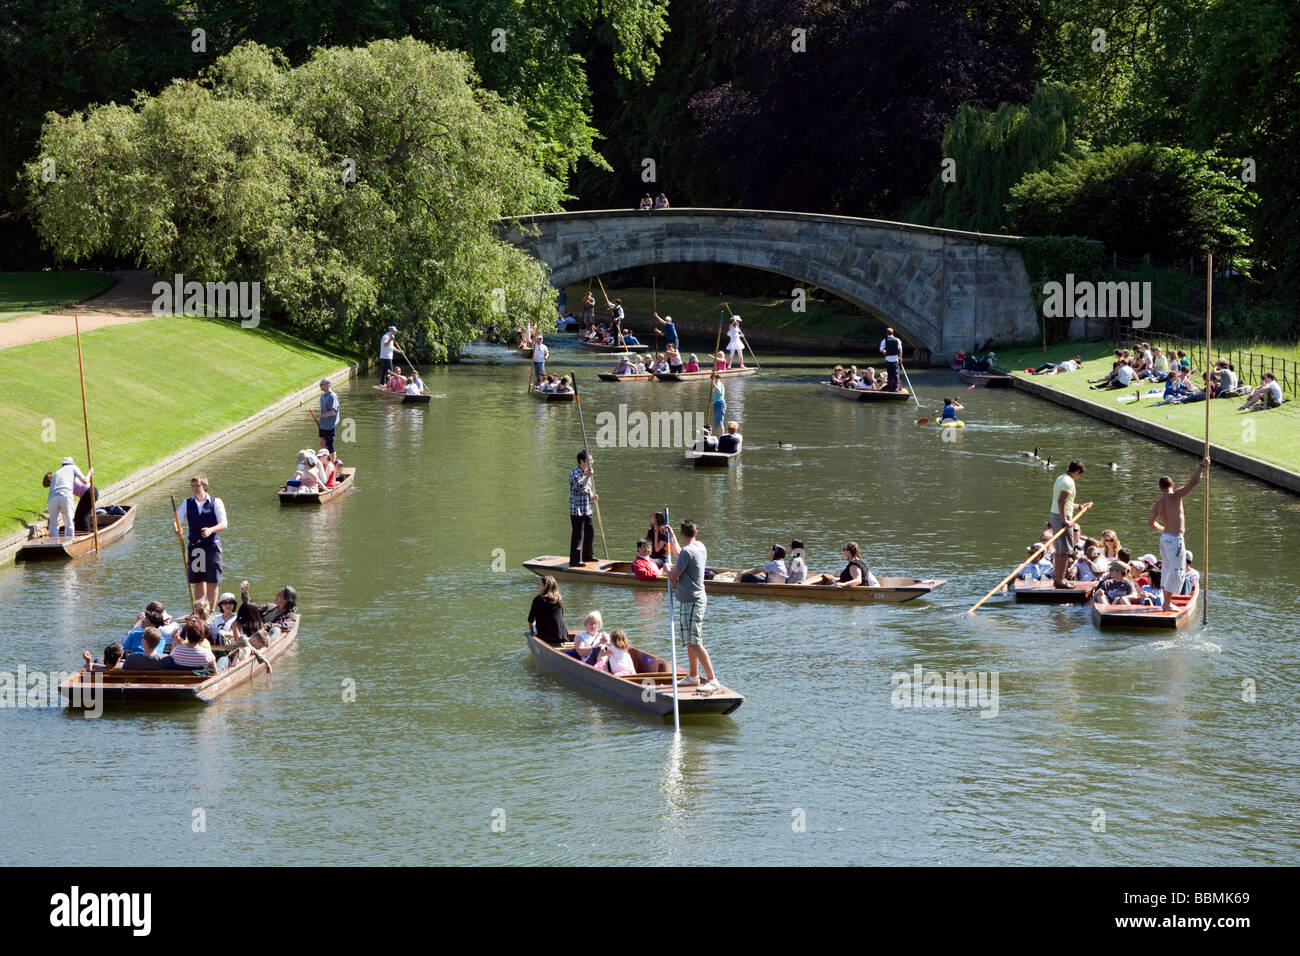 Punting on the River Cam at Kings College, Cambridge, UK on a sunny summers day - Stock Image